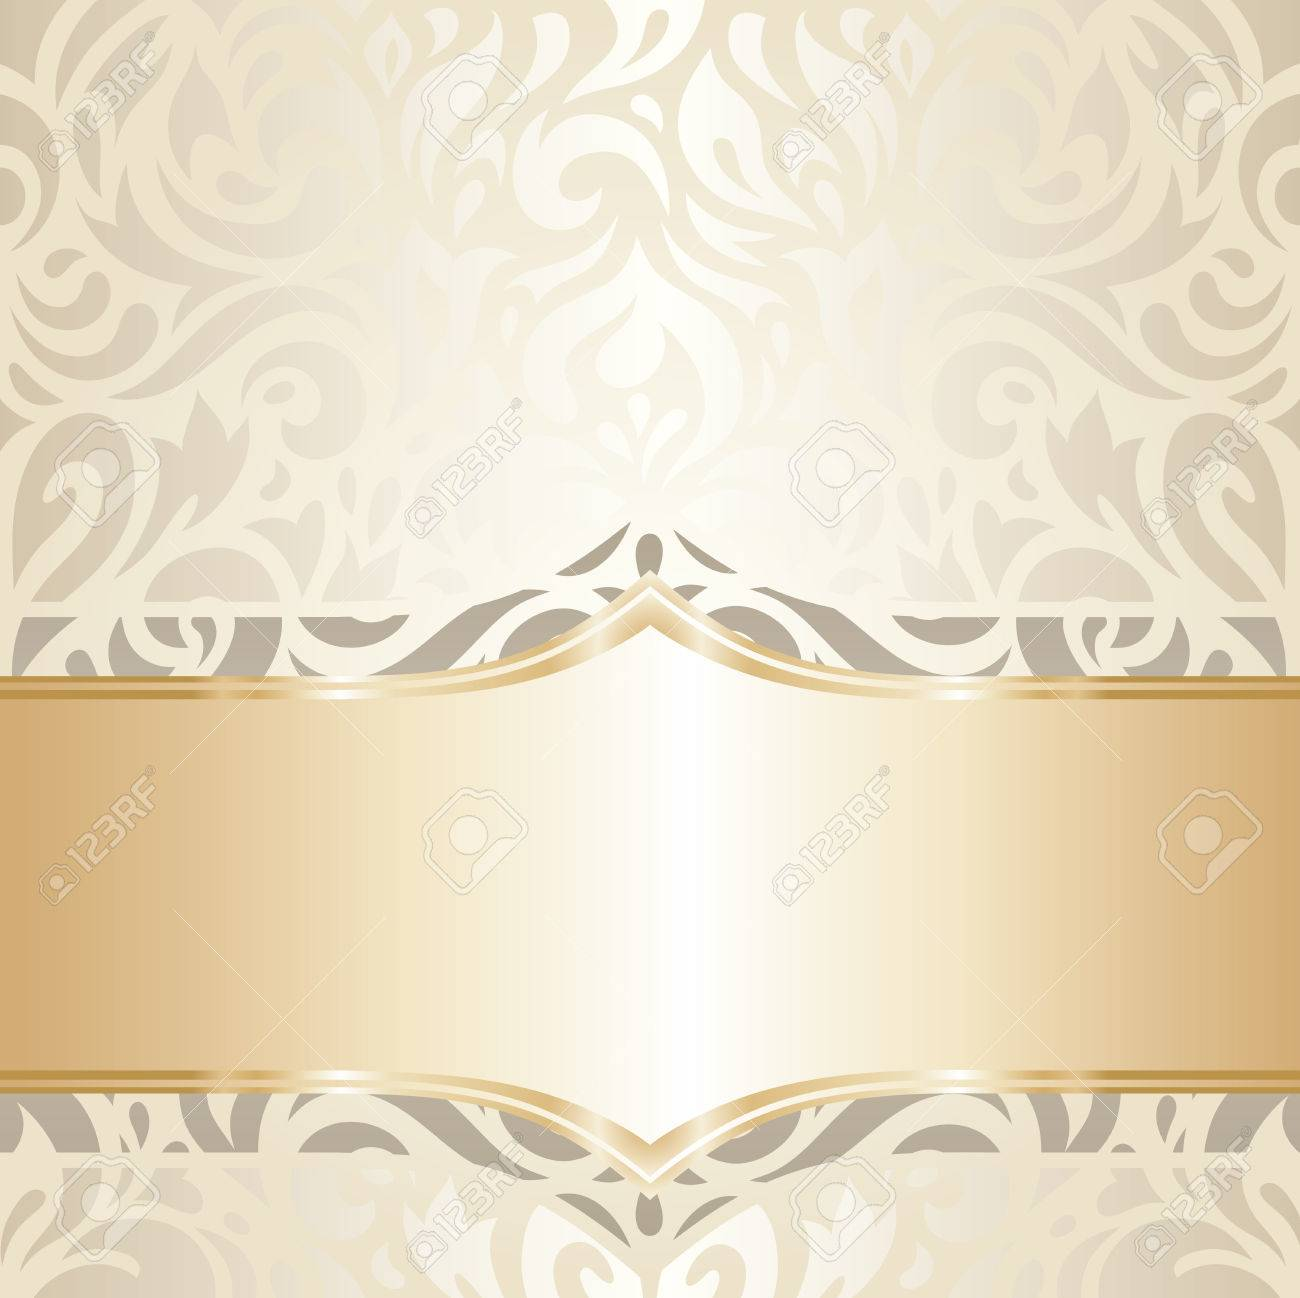 wedding vintage wallpaper decorative design white gold vector royalty free cliparts vectors and stock illustration image 53426581 wedding vintage wallpaper decorative design white gold vector